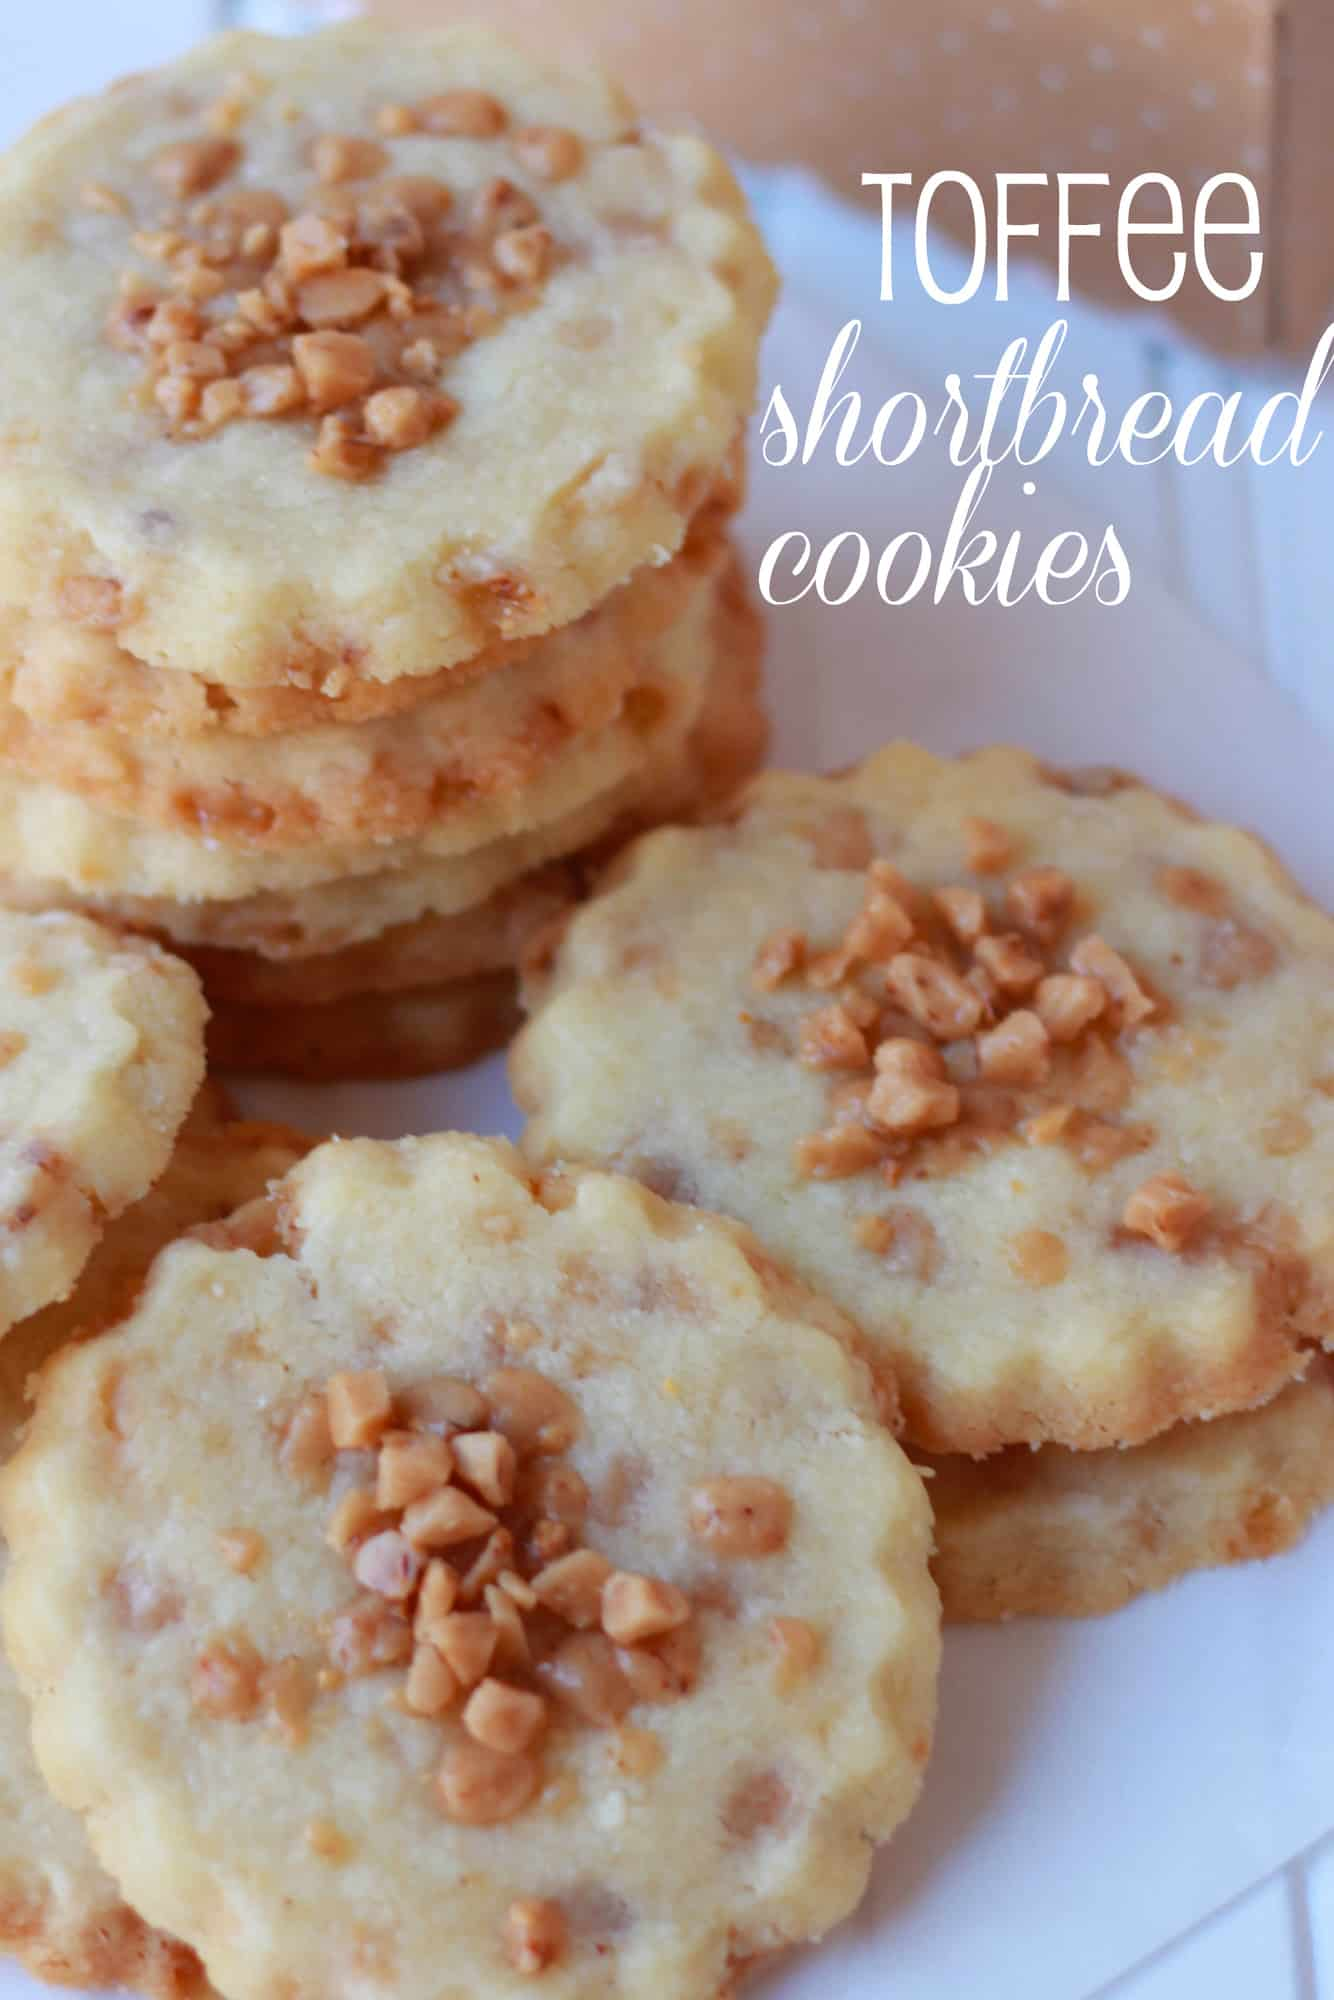 Shortbread cookies on a white board.